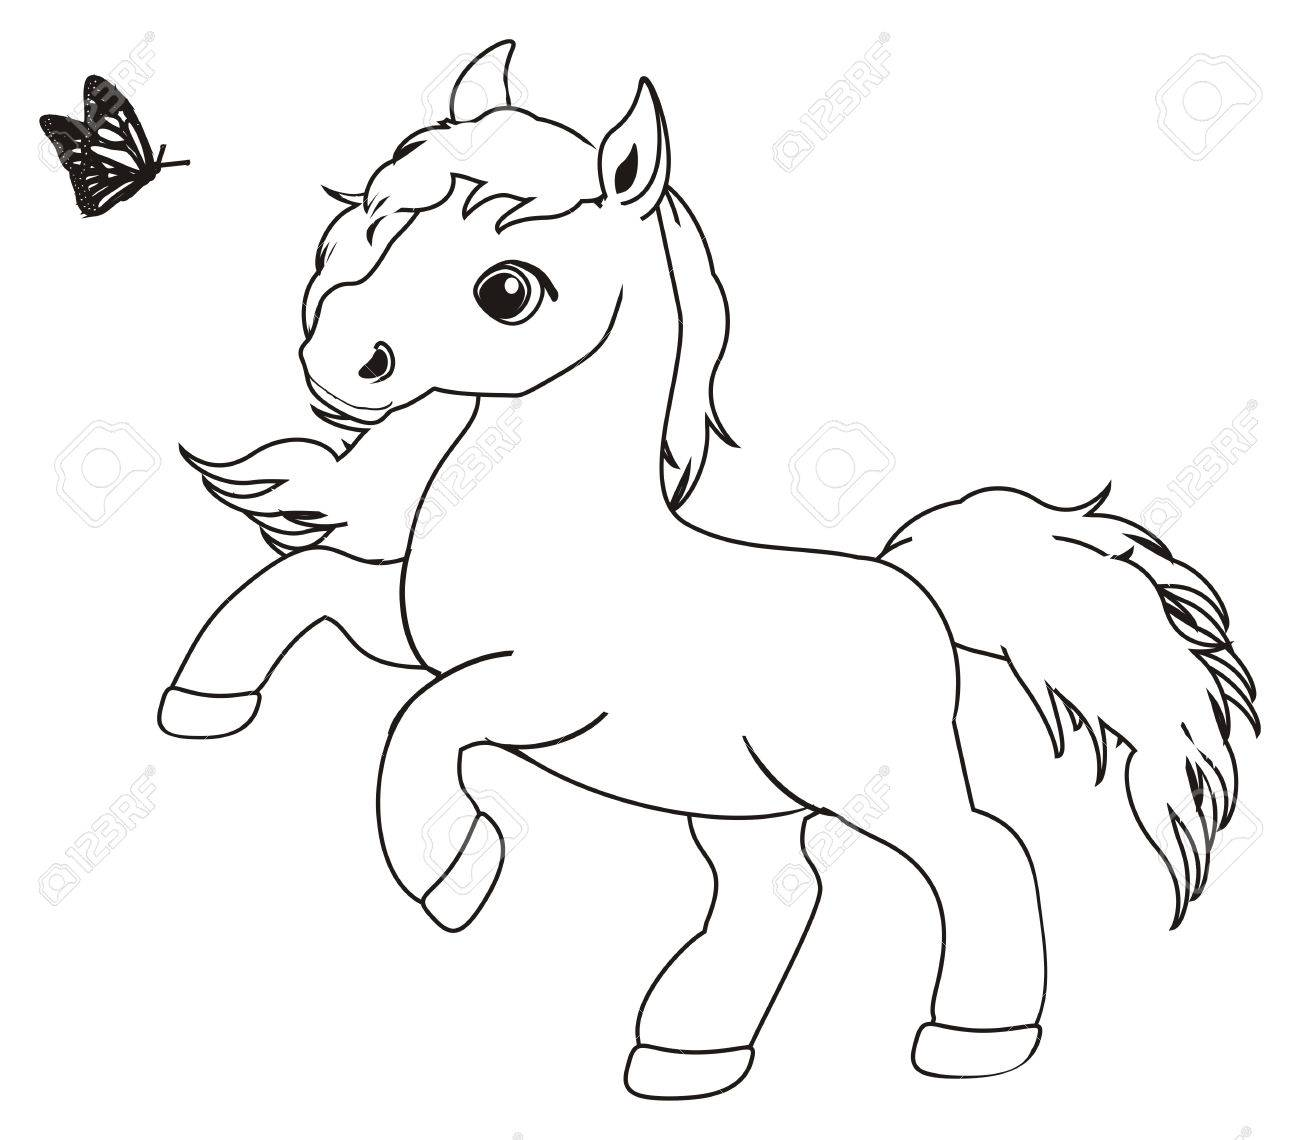 Coloring Horse With Butterfly Stock Photo, Picture And Royalty Free ...